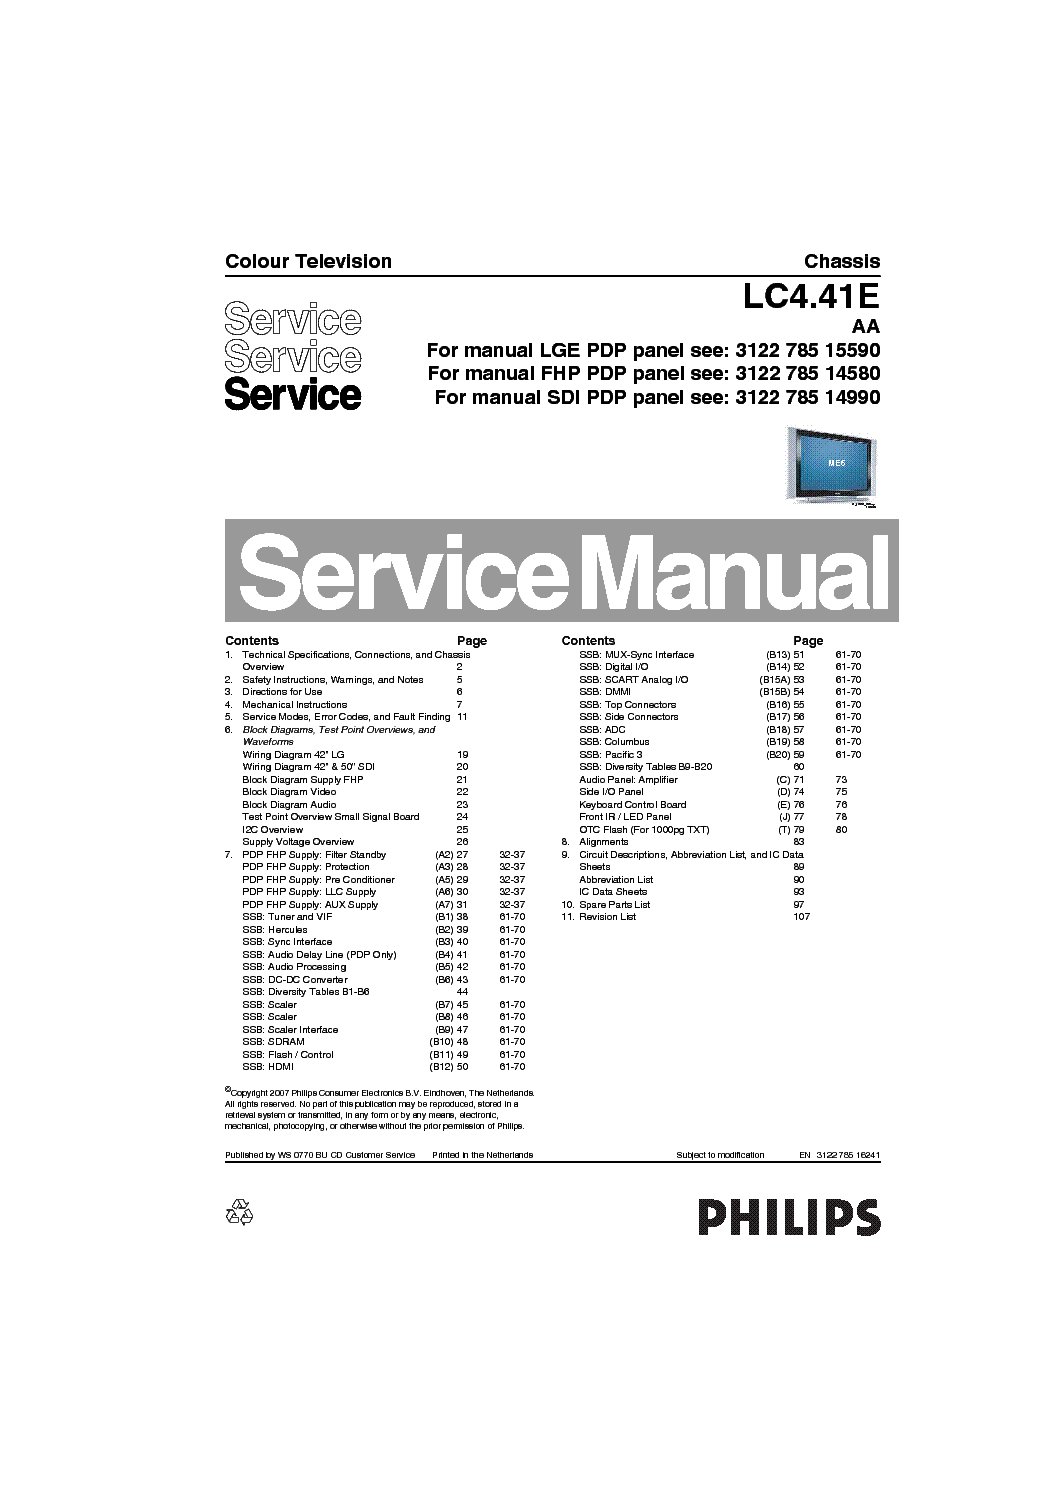 PHILIPS CHASSIS-LC4.41E-AA SM service manual (1st page)